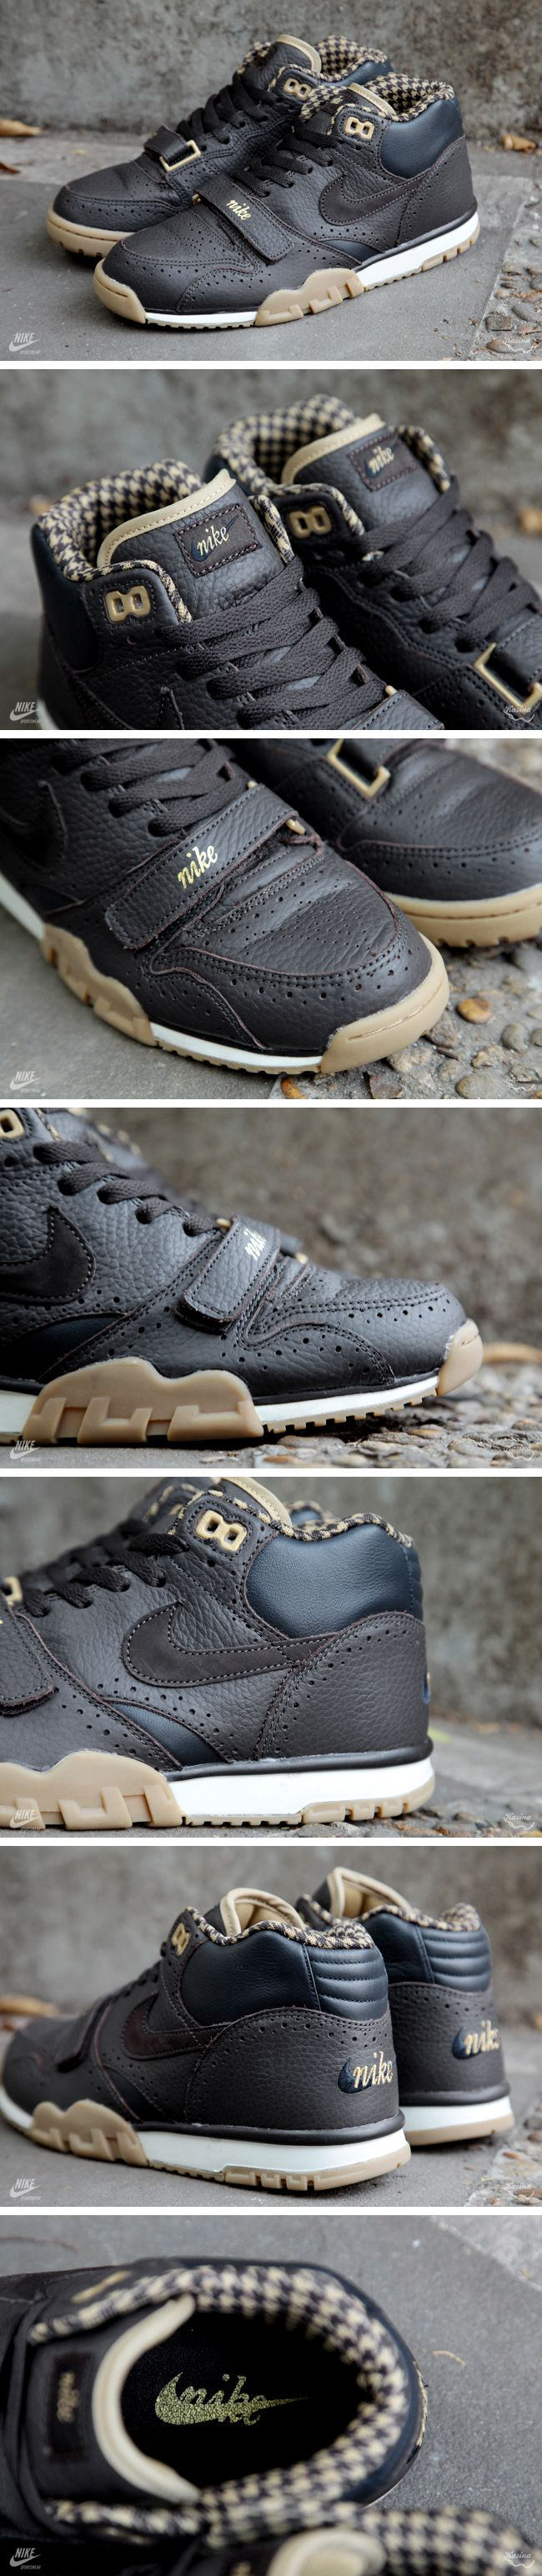 """Nike Air Trainer 1 Mid """"Houndstooth"""" (Detailed Pictures)"""